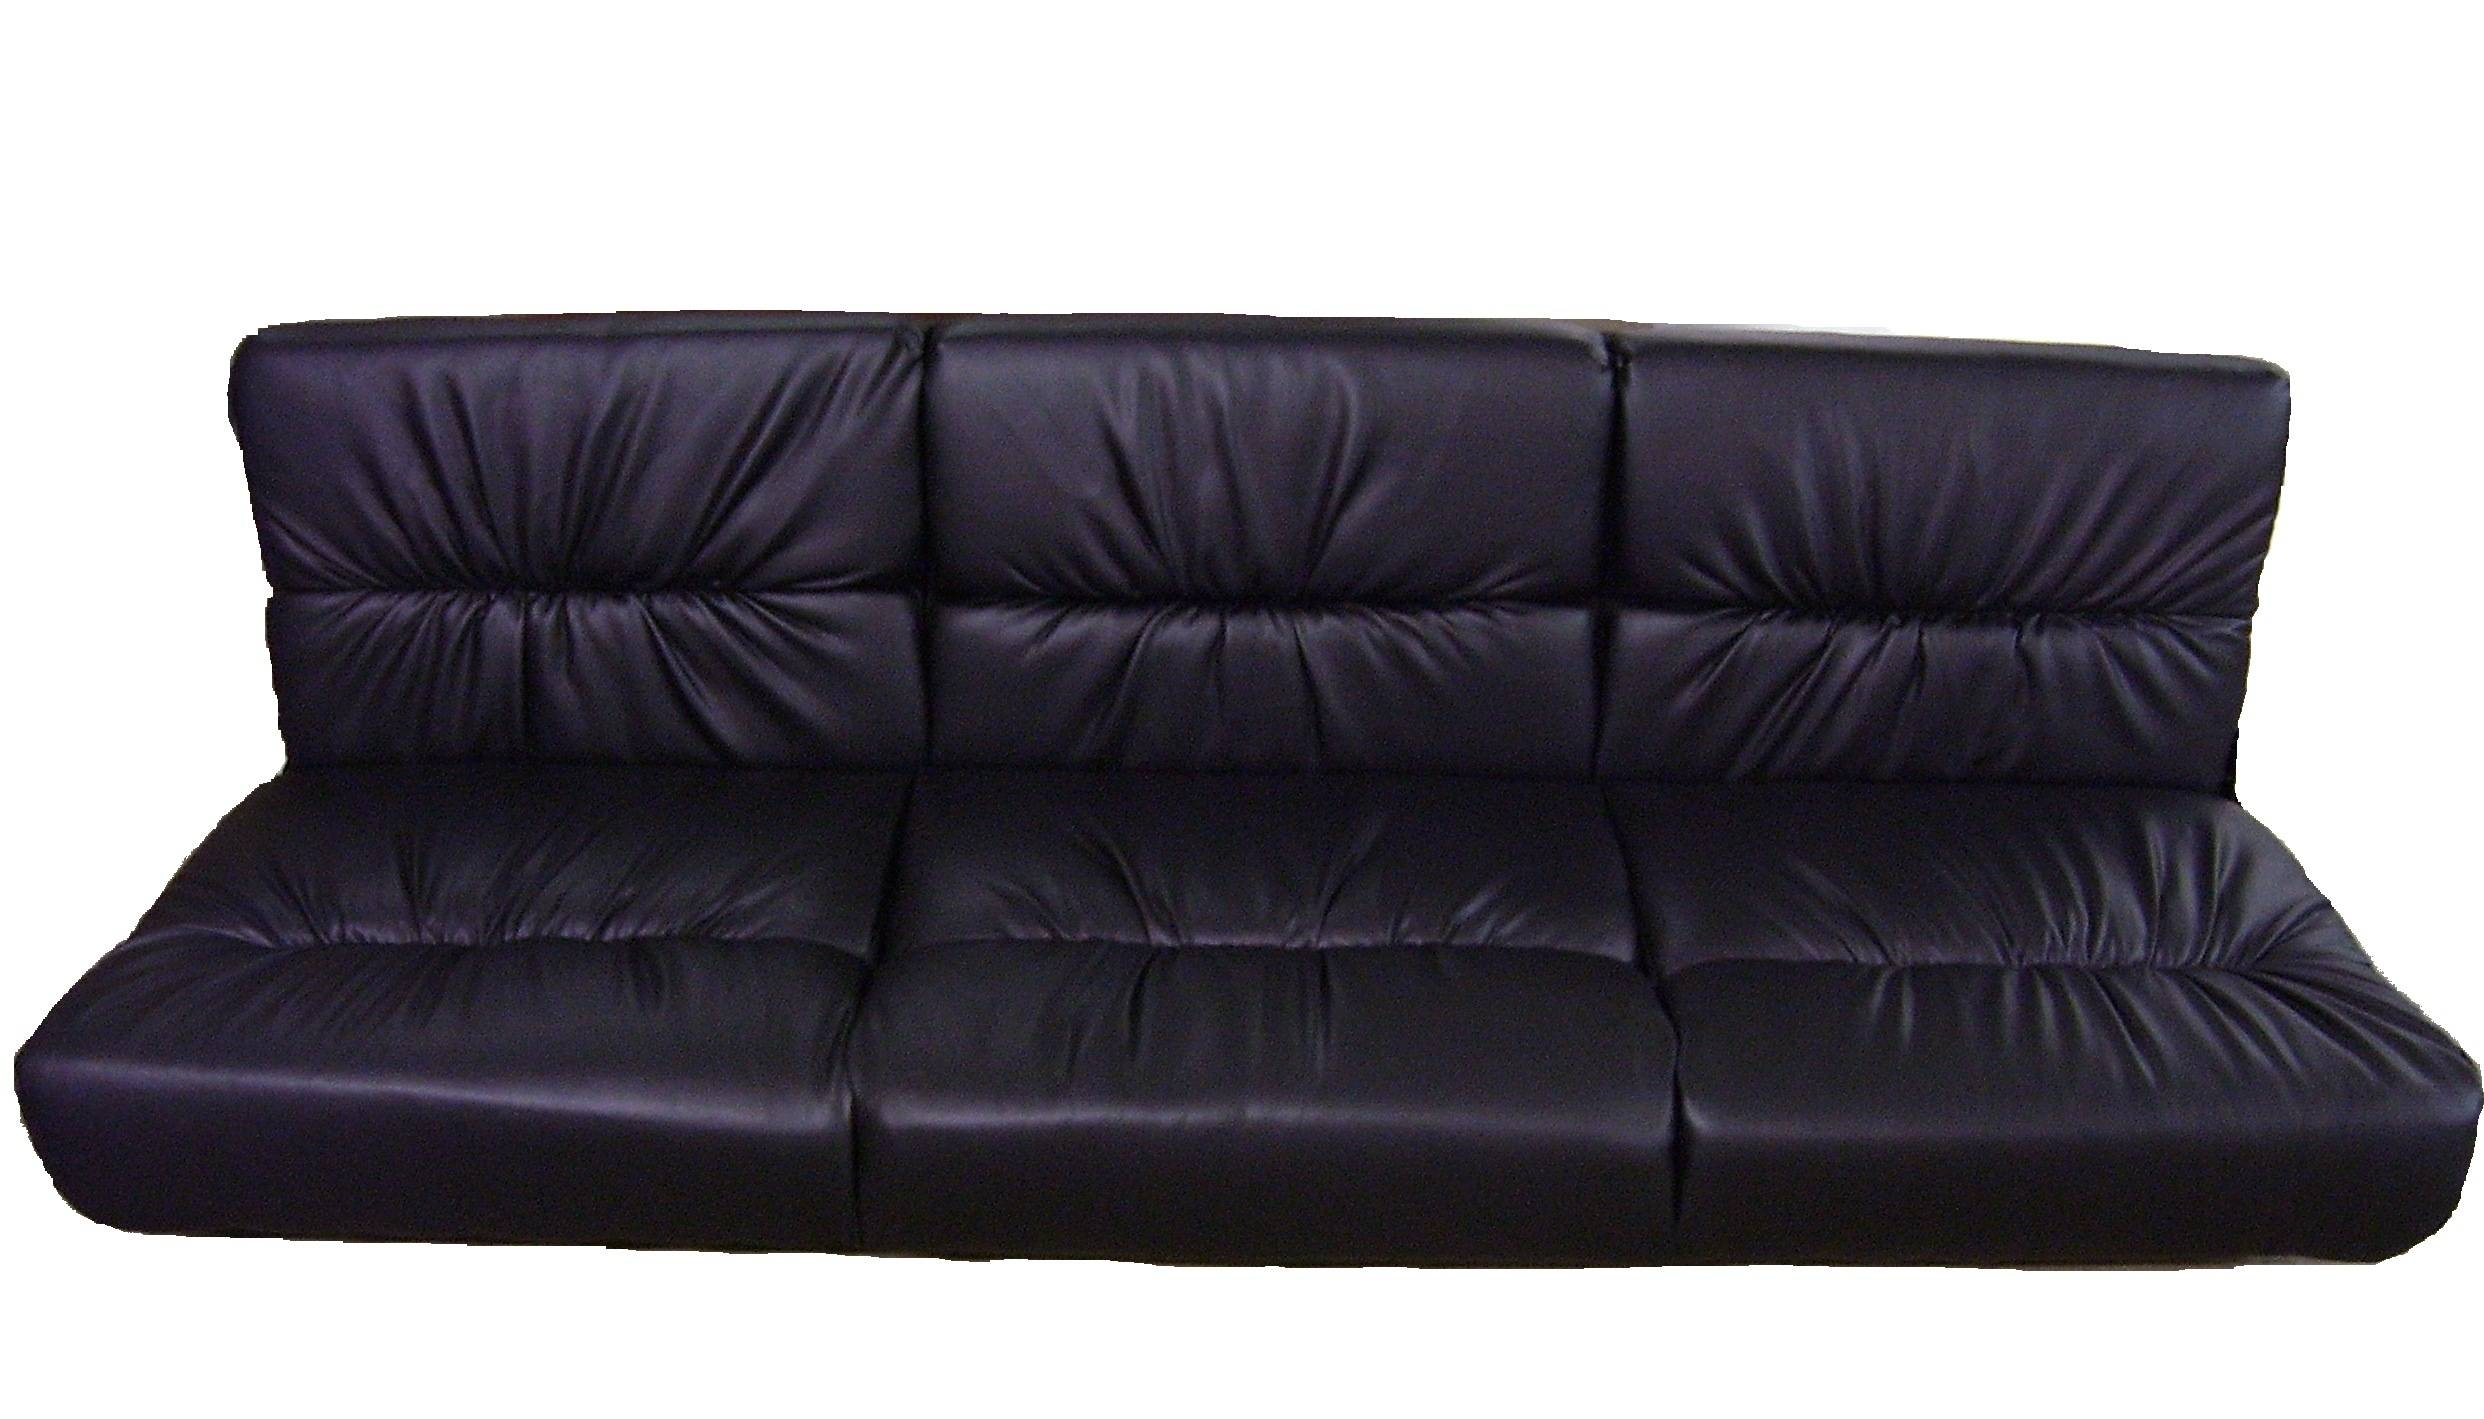 30 Inspirations Of 68 Inch Sofas